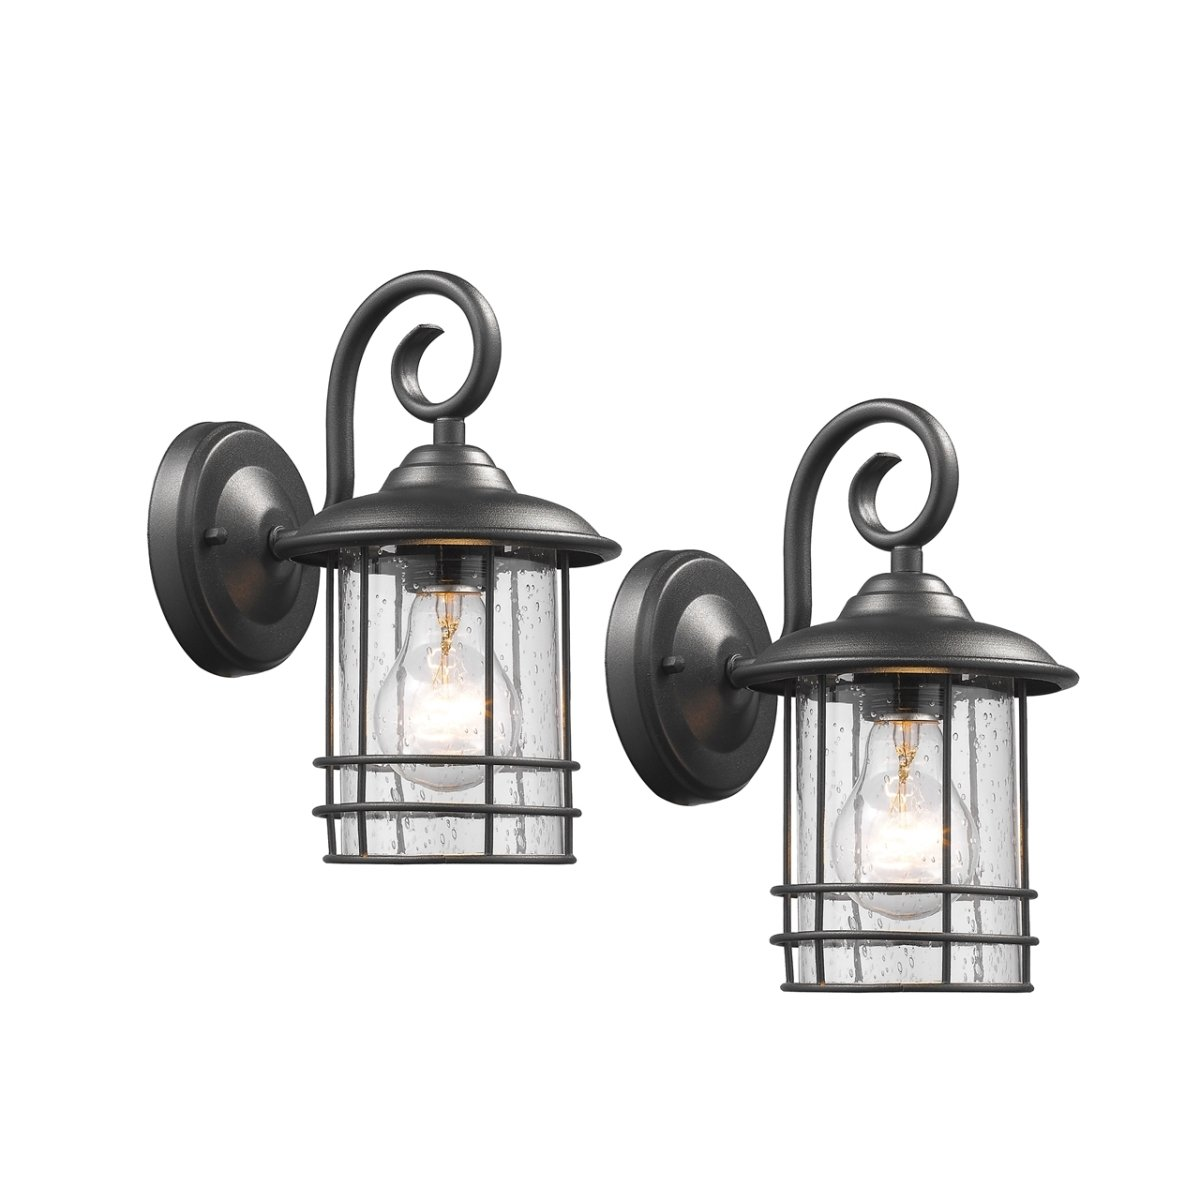 Chloe CH22055BK10-OD2 10 in. Lighting Transitional 1 Light Black Outdoor Wall Sconce - Pack of 2 - Textured Black